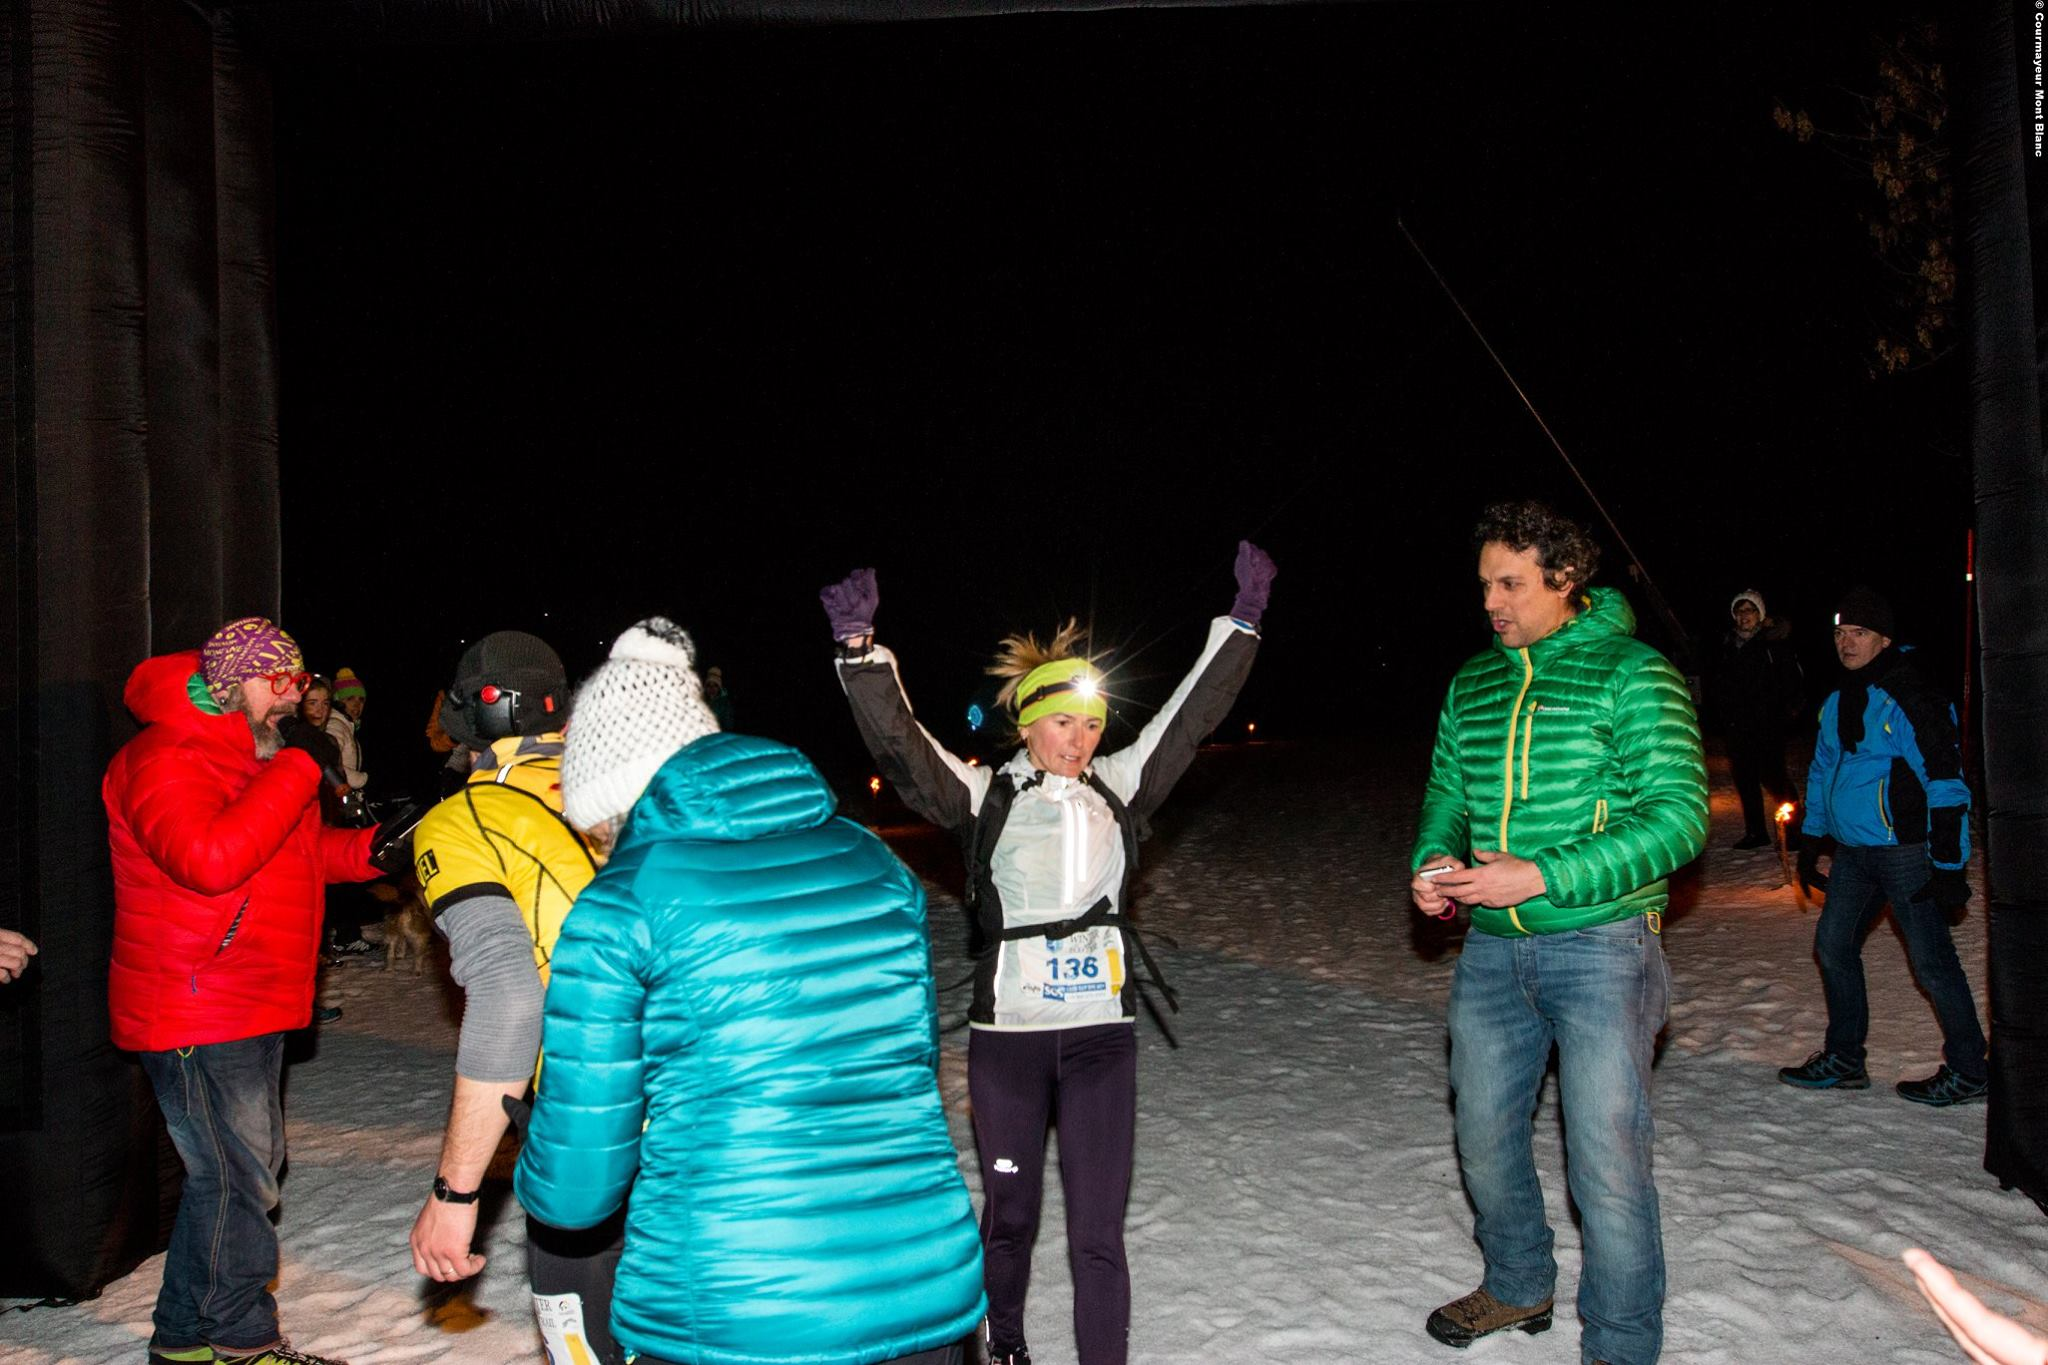 16819377 1254884887899666 7355466794973532193 o - RESULTATS WINTER ECO TRAIL BY NIGHT COURMAYEUR (ITALIE) 18-02-2017